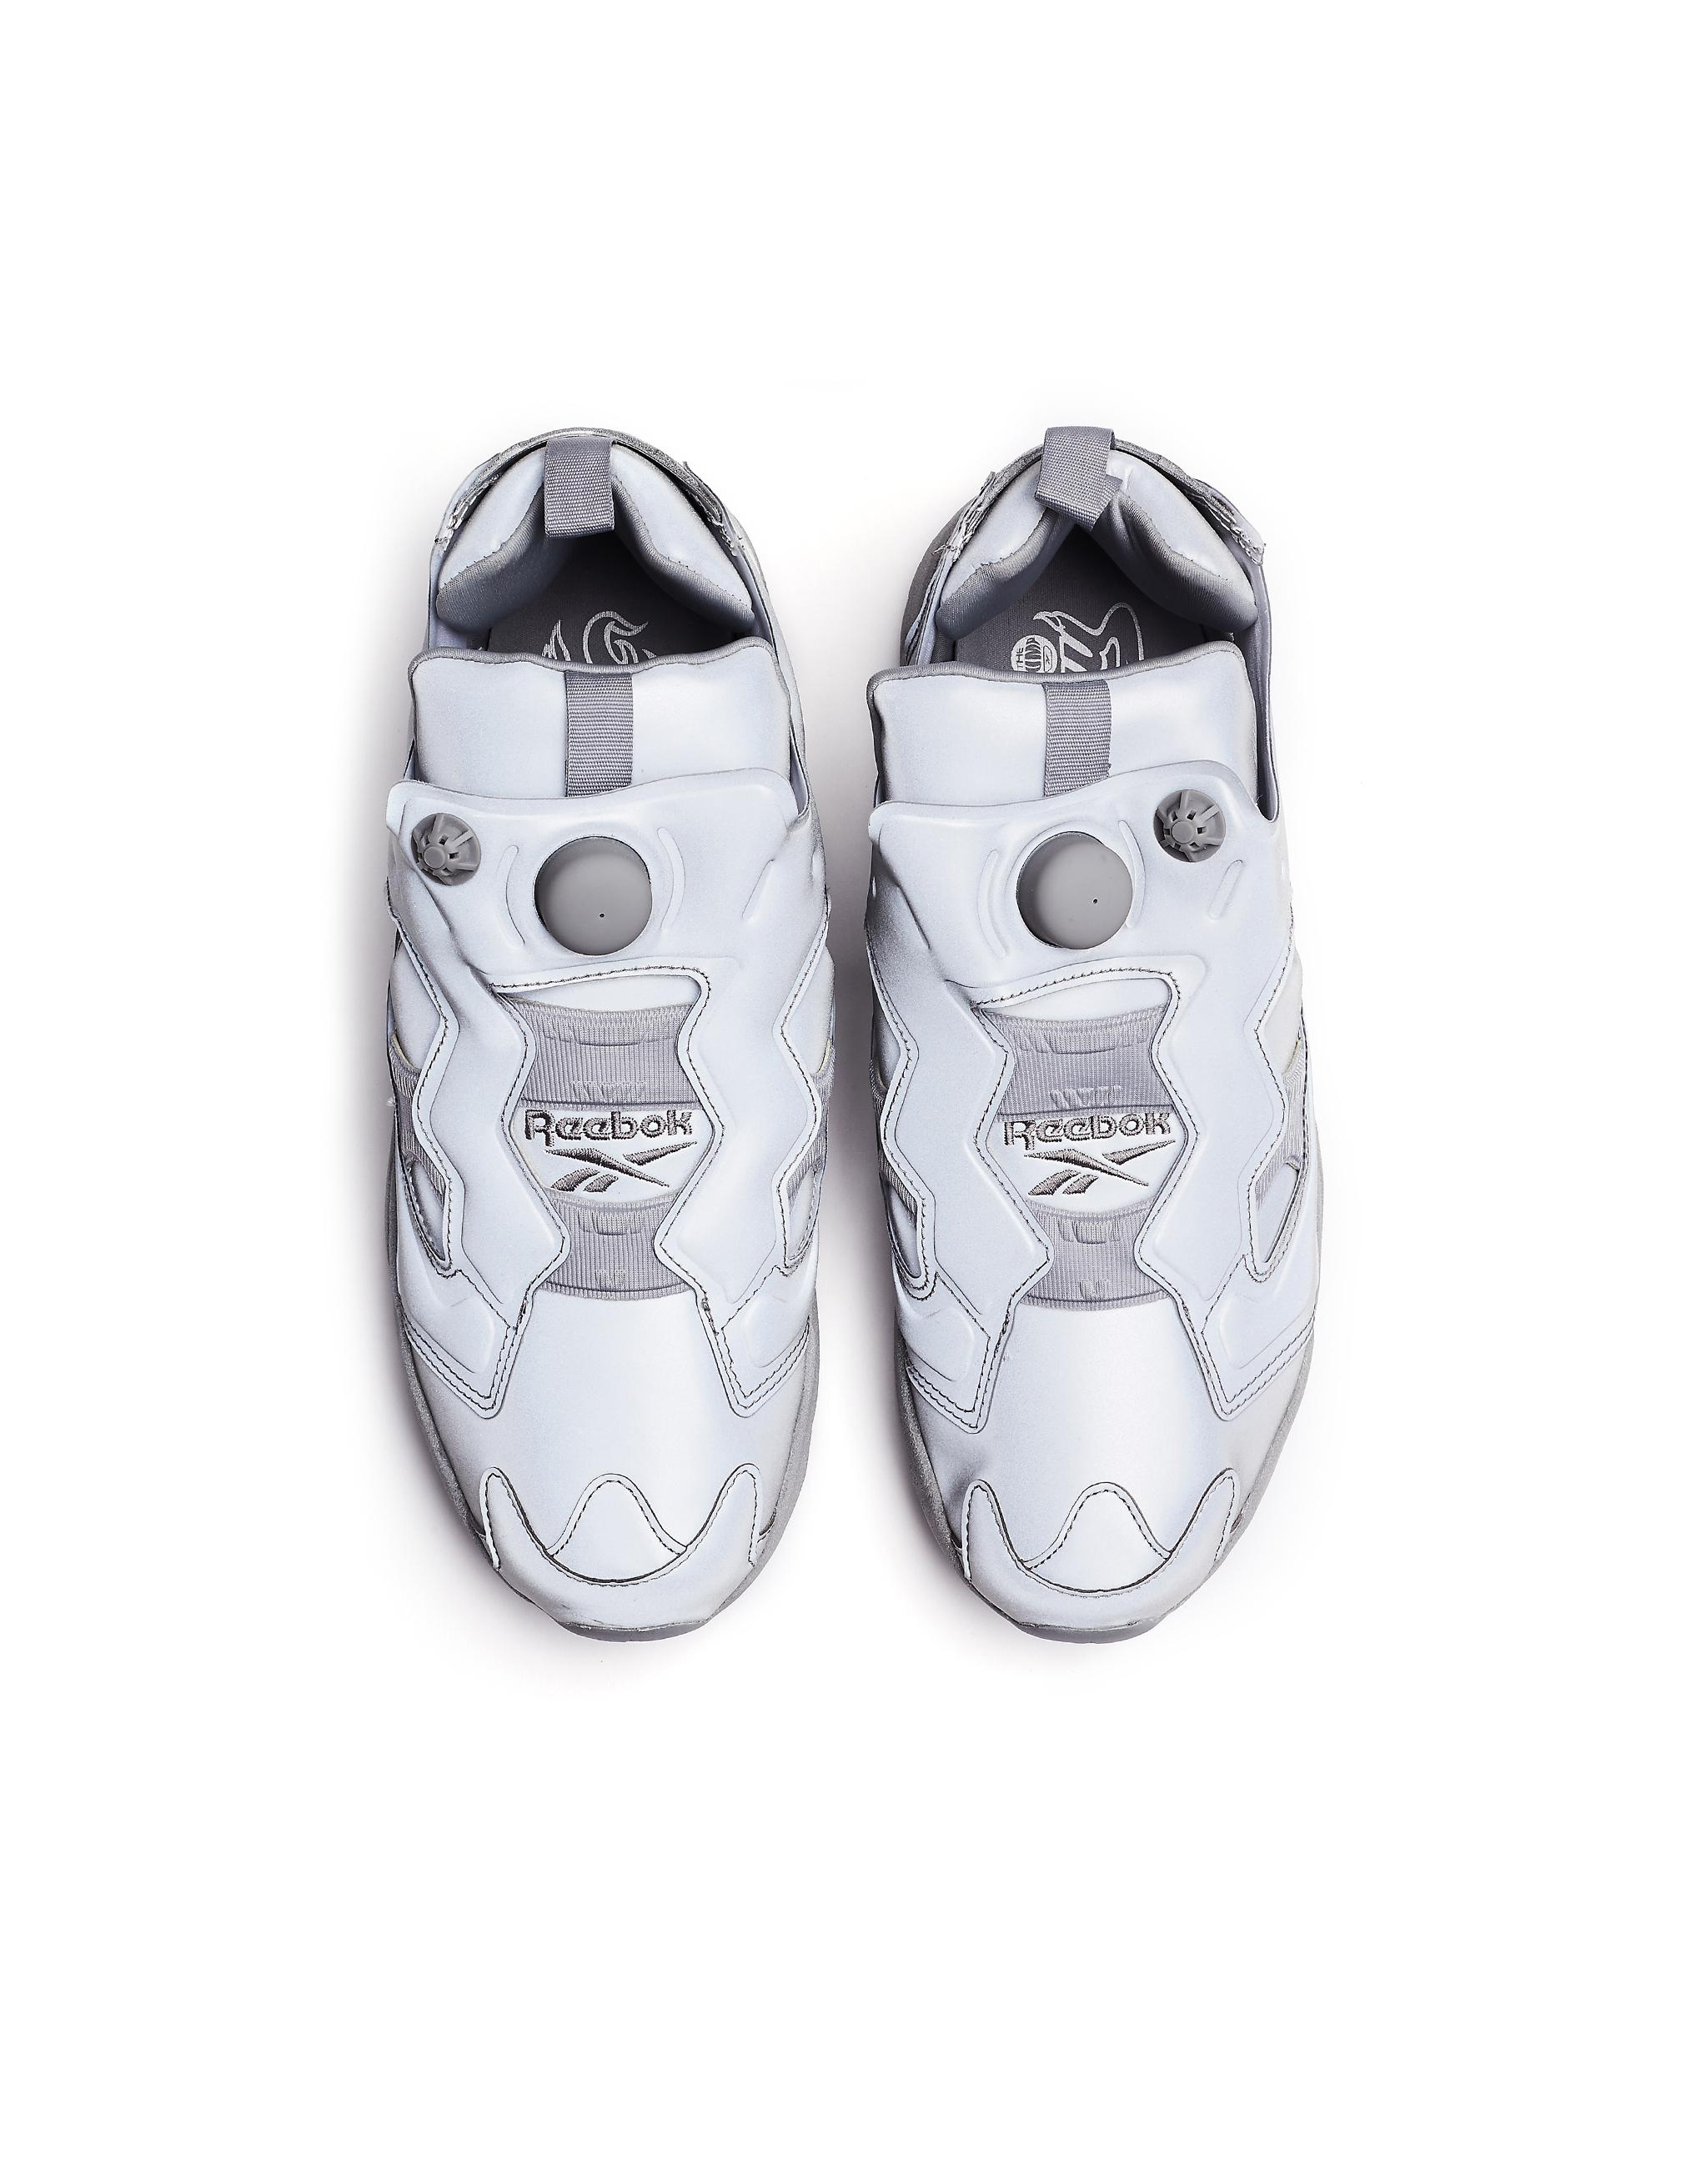 f57b55b1092a Vetements Instapump Fury Reflective Sneakers in Gray - Lyst